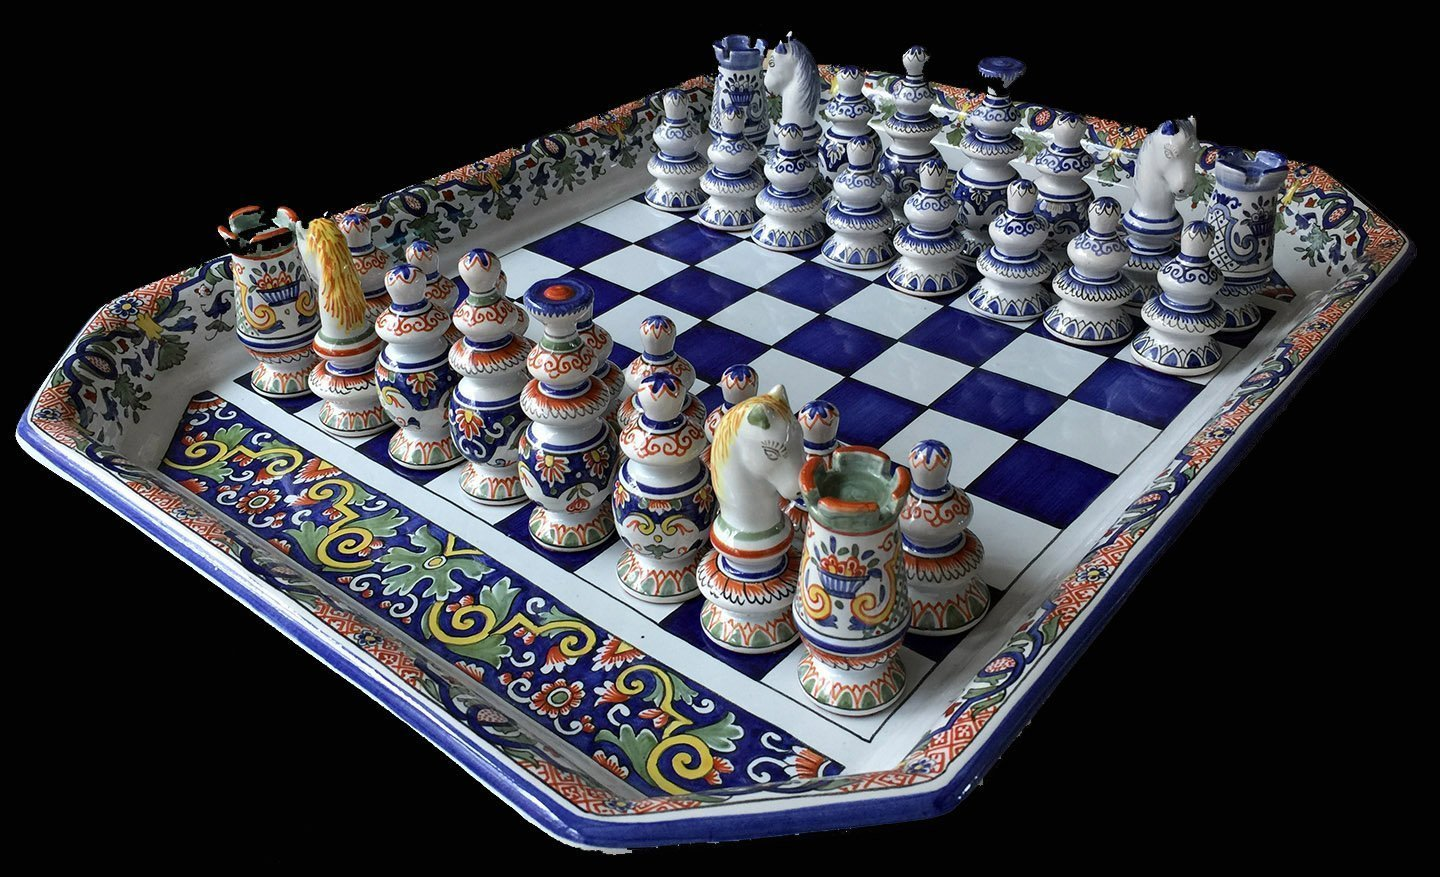 French Faience Antique Chess Set Www Chessantiques Com